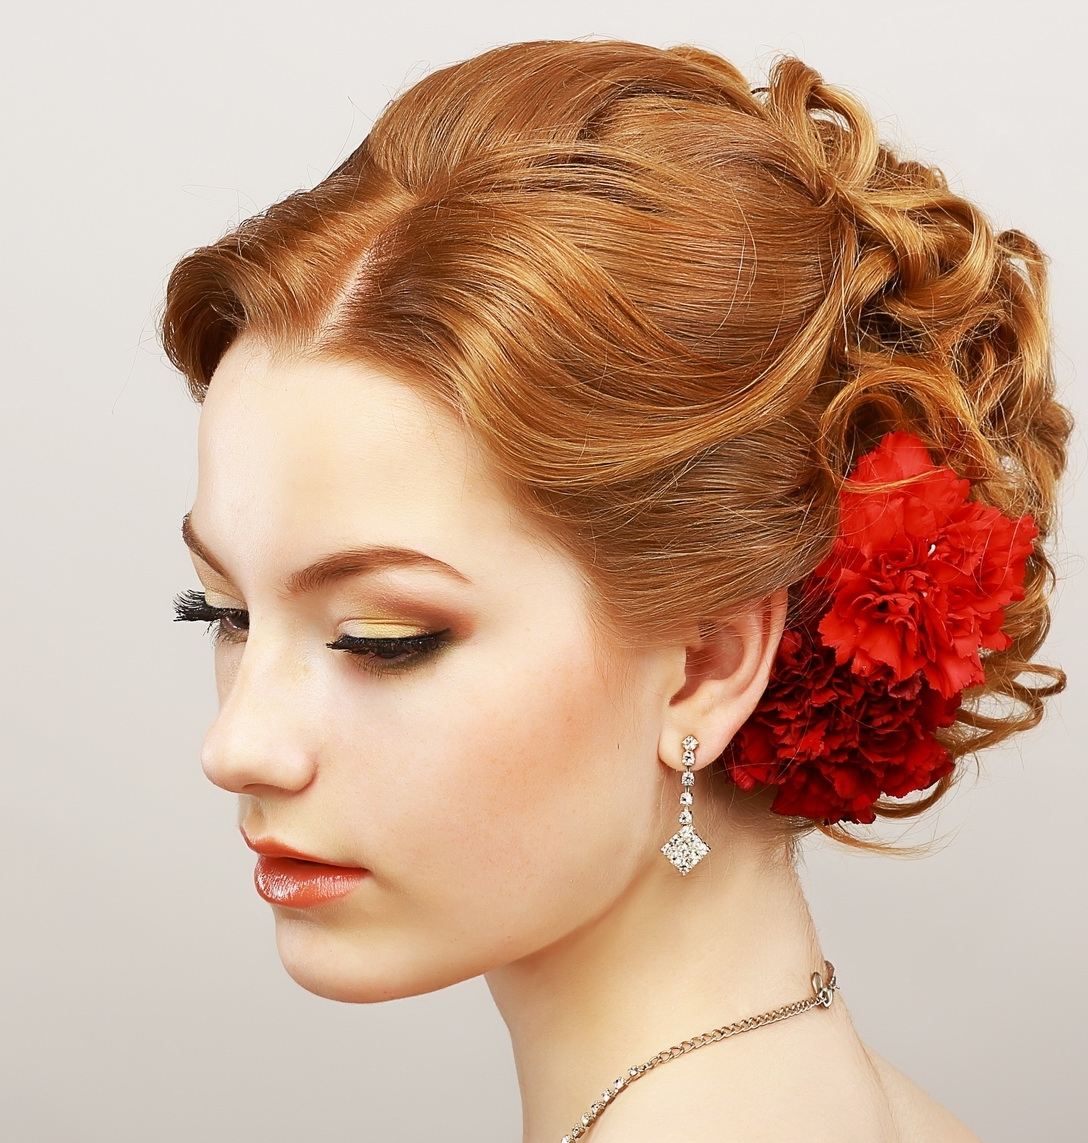 16 Easy Prom Hairstyles For Short And Medium Length Hair Inside Updo Hairstyles For Short Hair Prom (View 2 of 15)